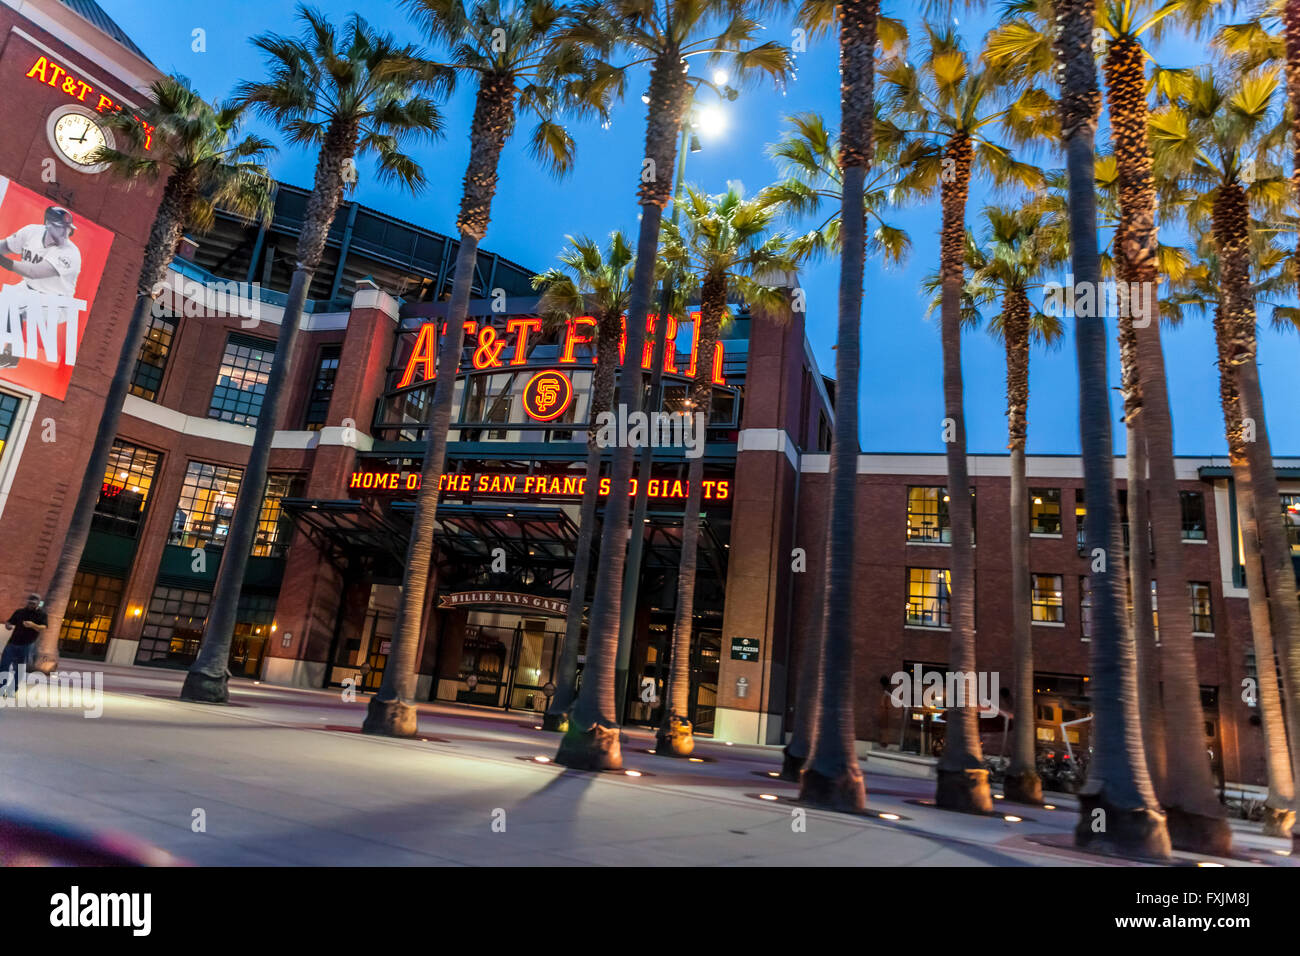 AT&T park in San Francisco California home of the Giants baseball team - Stock Image